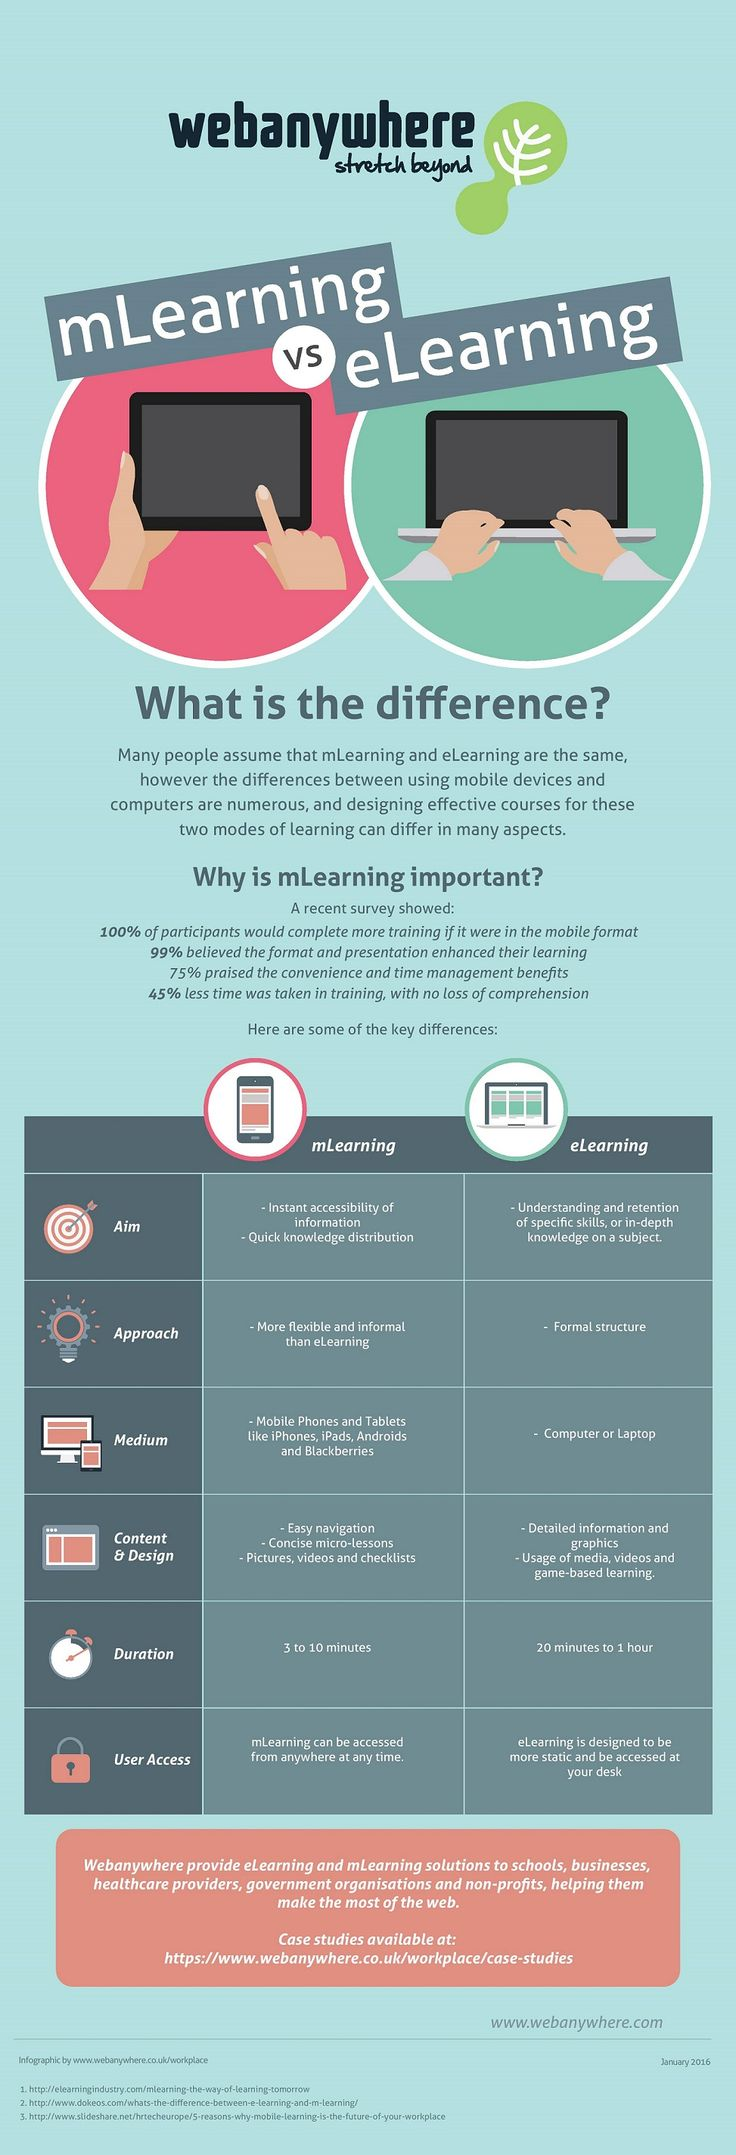 mLearning vs eLearning Infographic - http://elearninginfographics.com/mlearning-vs-elearning-infographic/